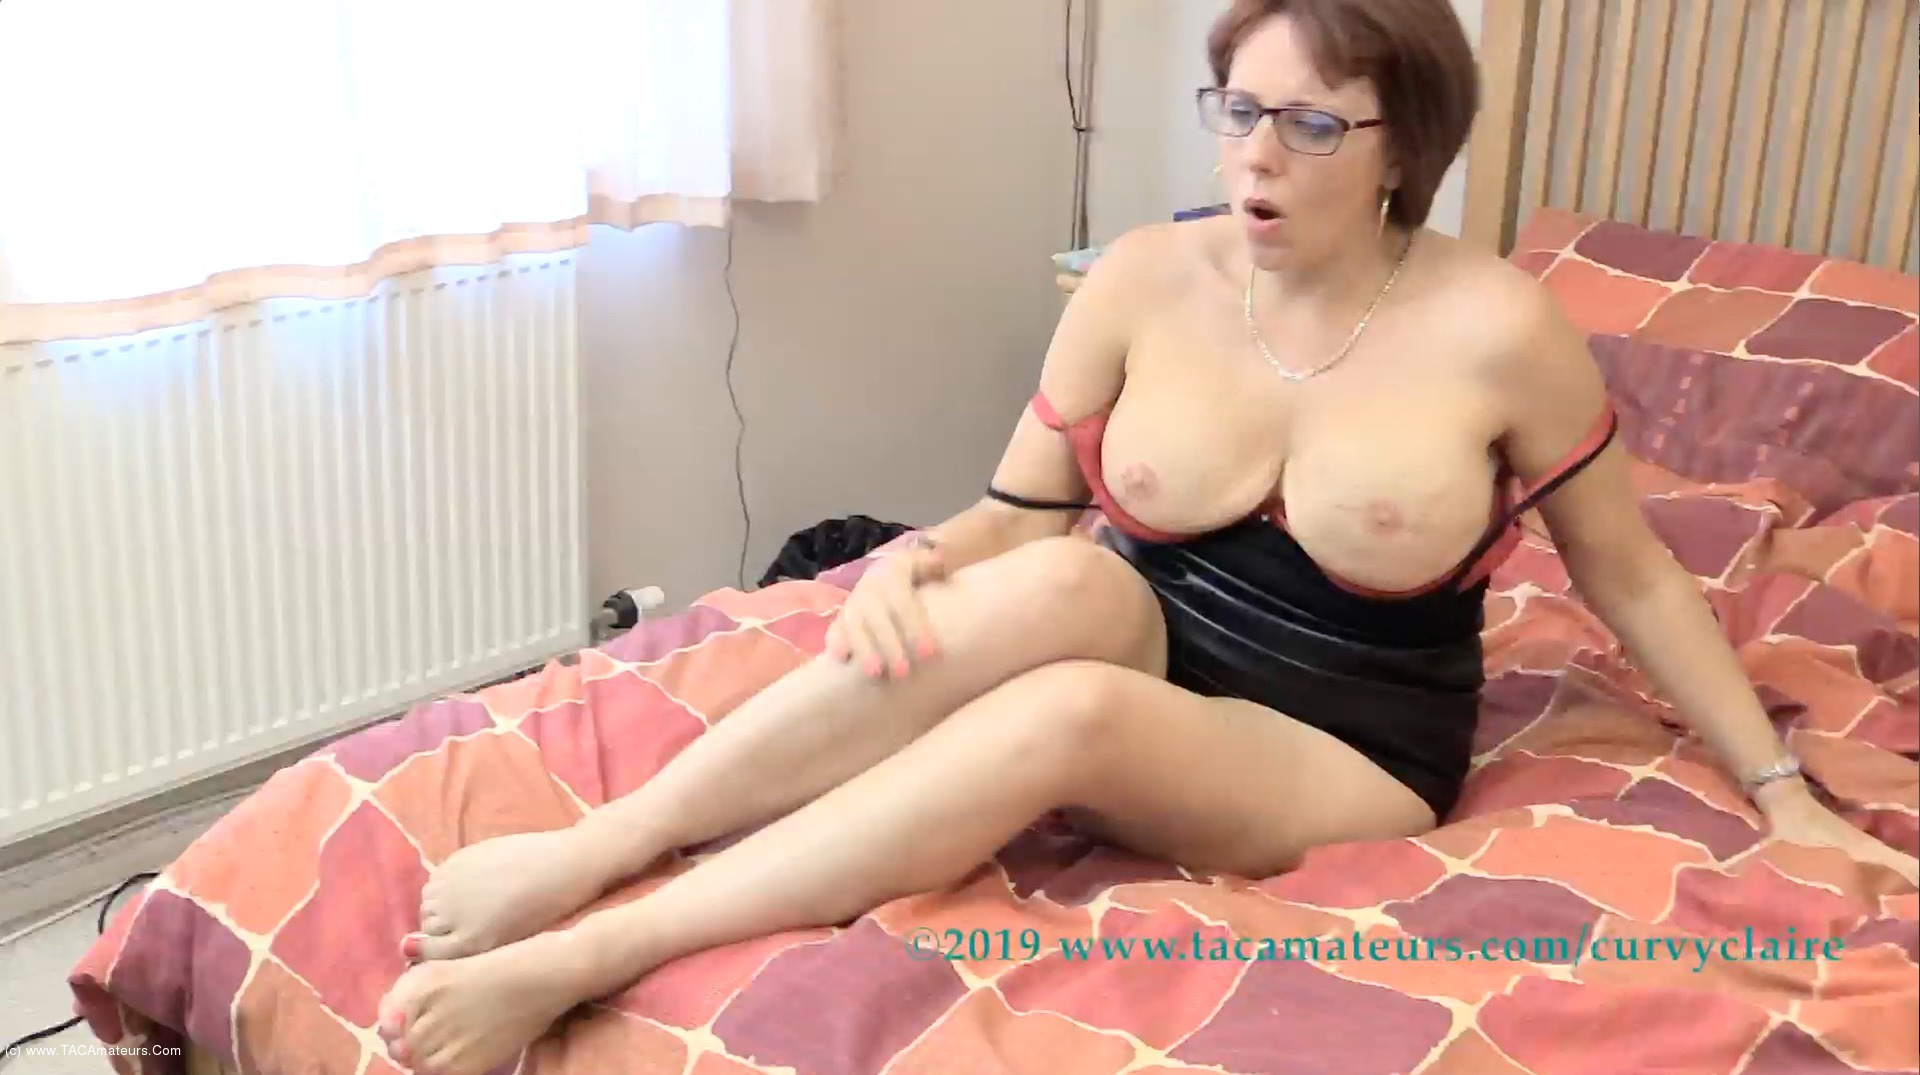 CurvyClaire - Curvy Claire Web Camming Girl Pt2 scene 1